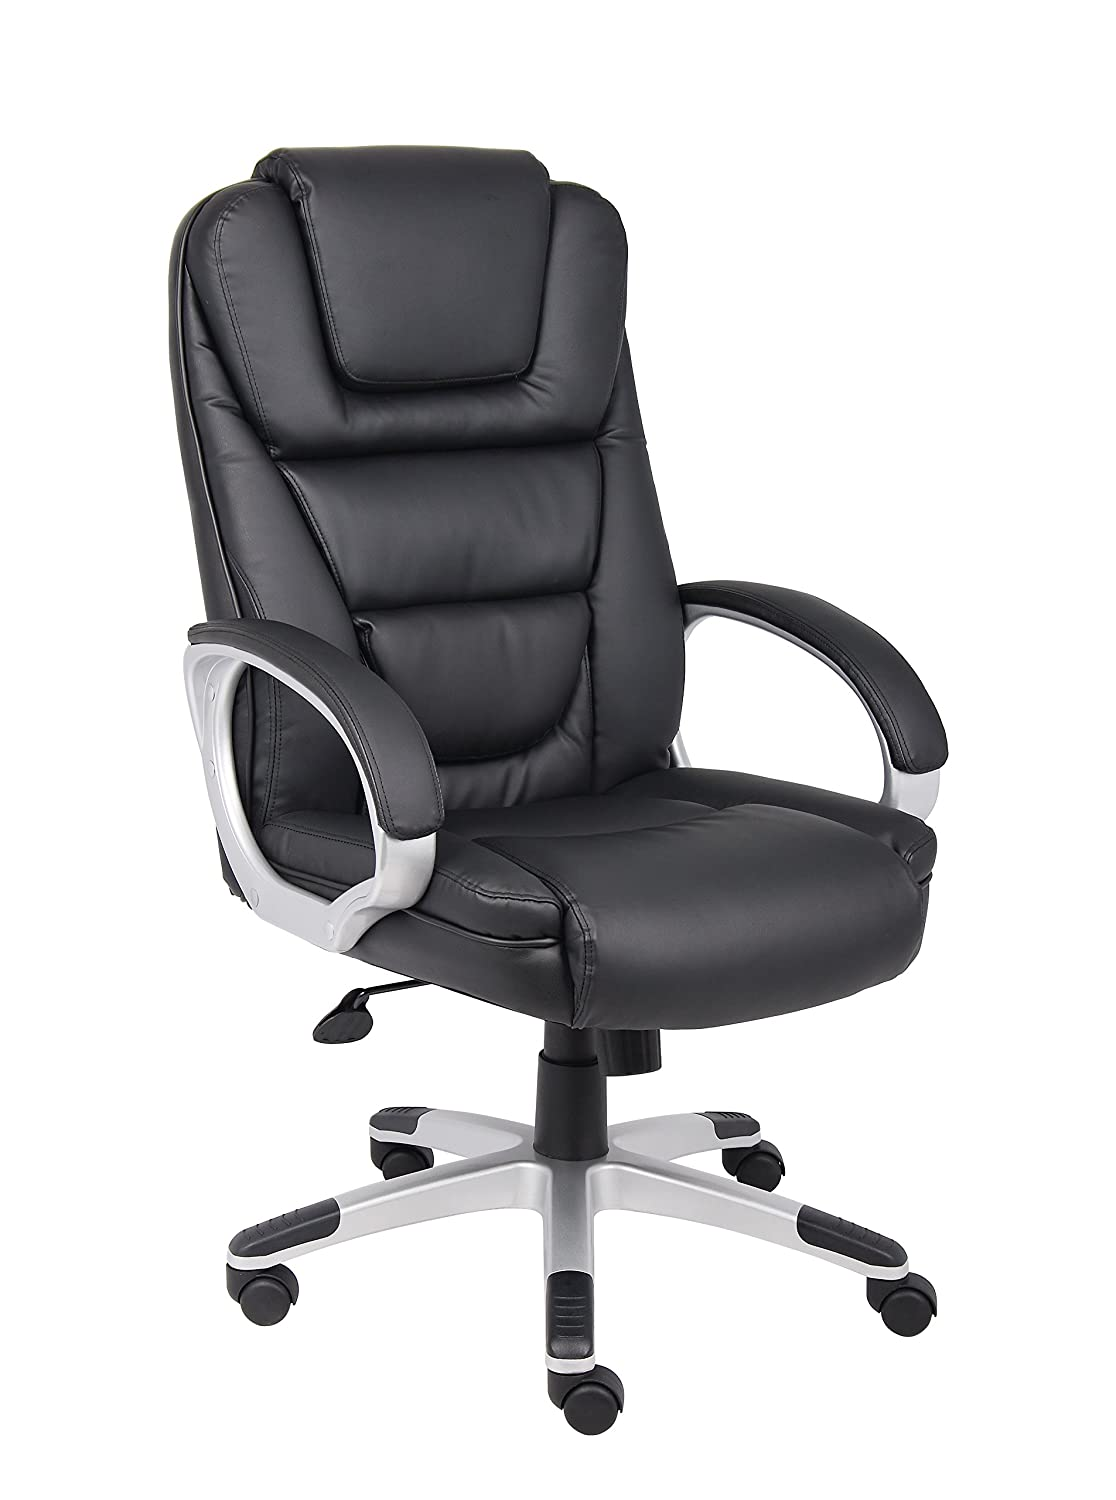 Most comfortable office chair - Comparison Chart Of Most Comfortable Office Chair